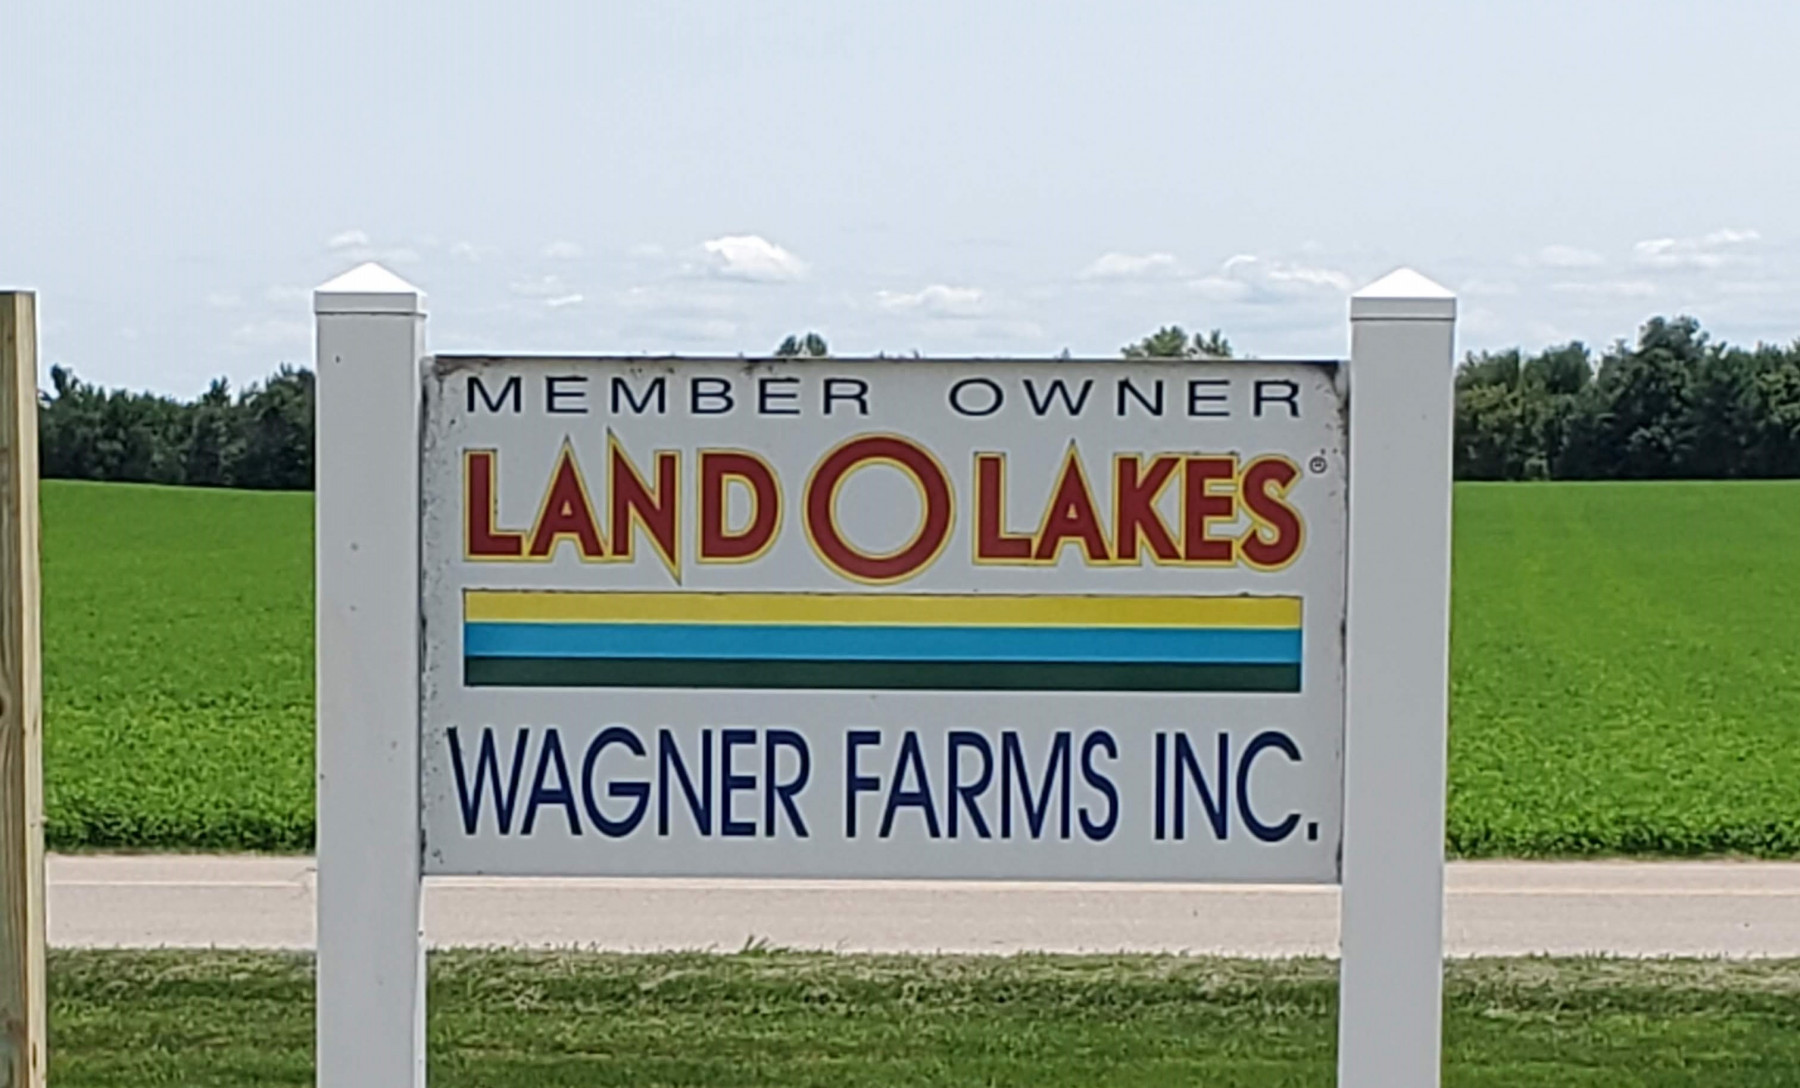 Thanks to our hosts, Wager Farms!